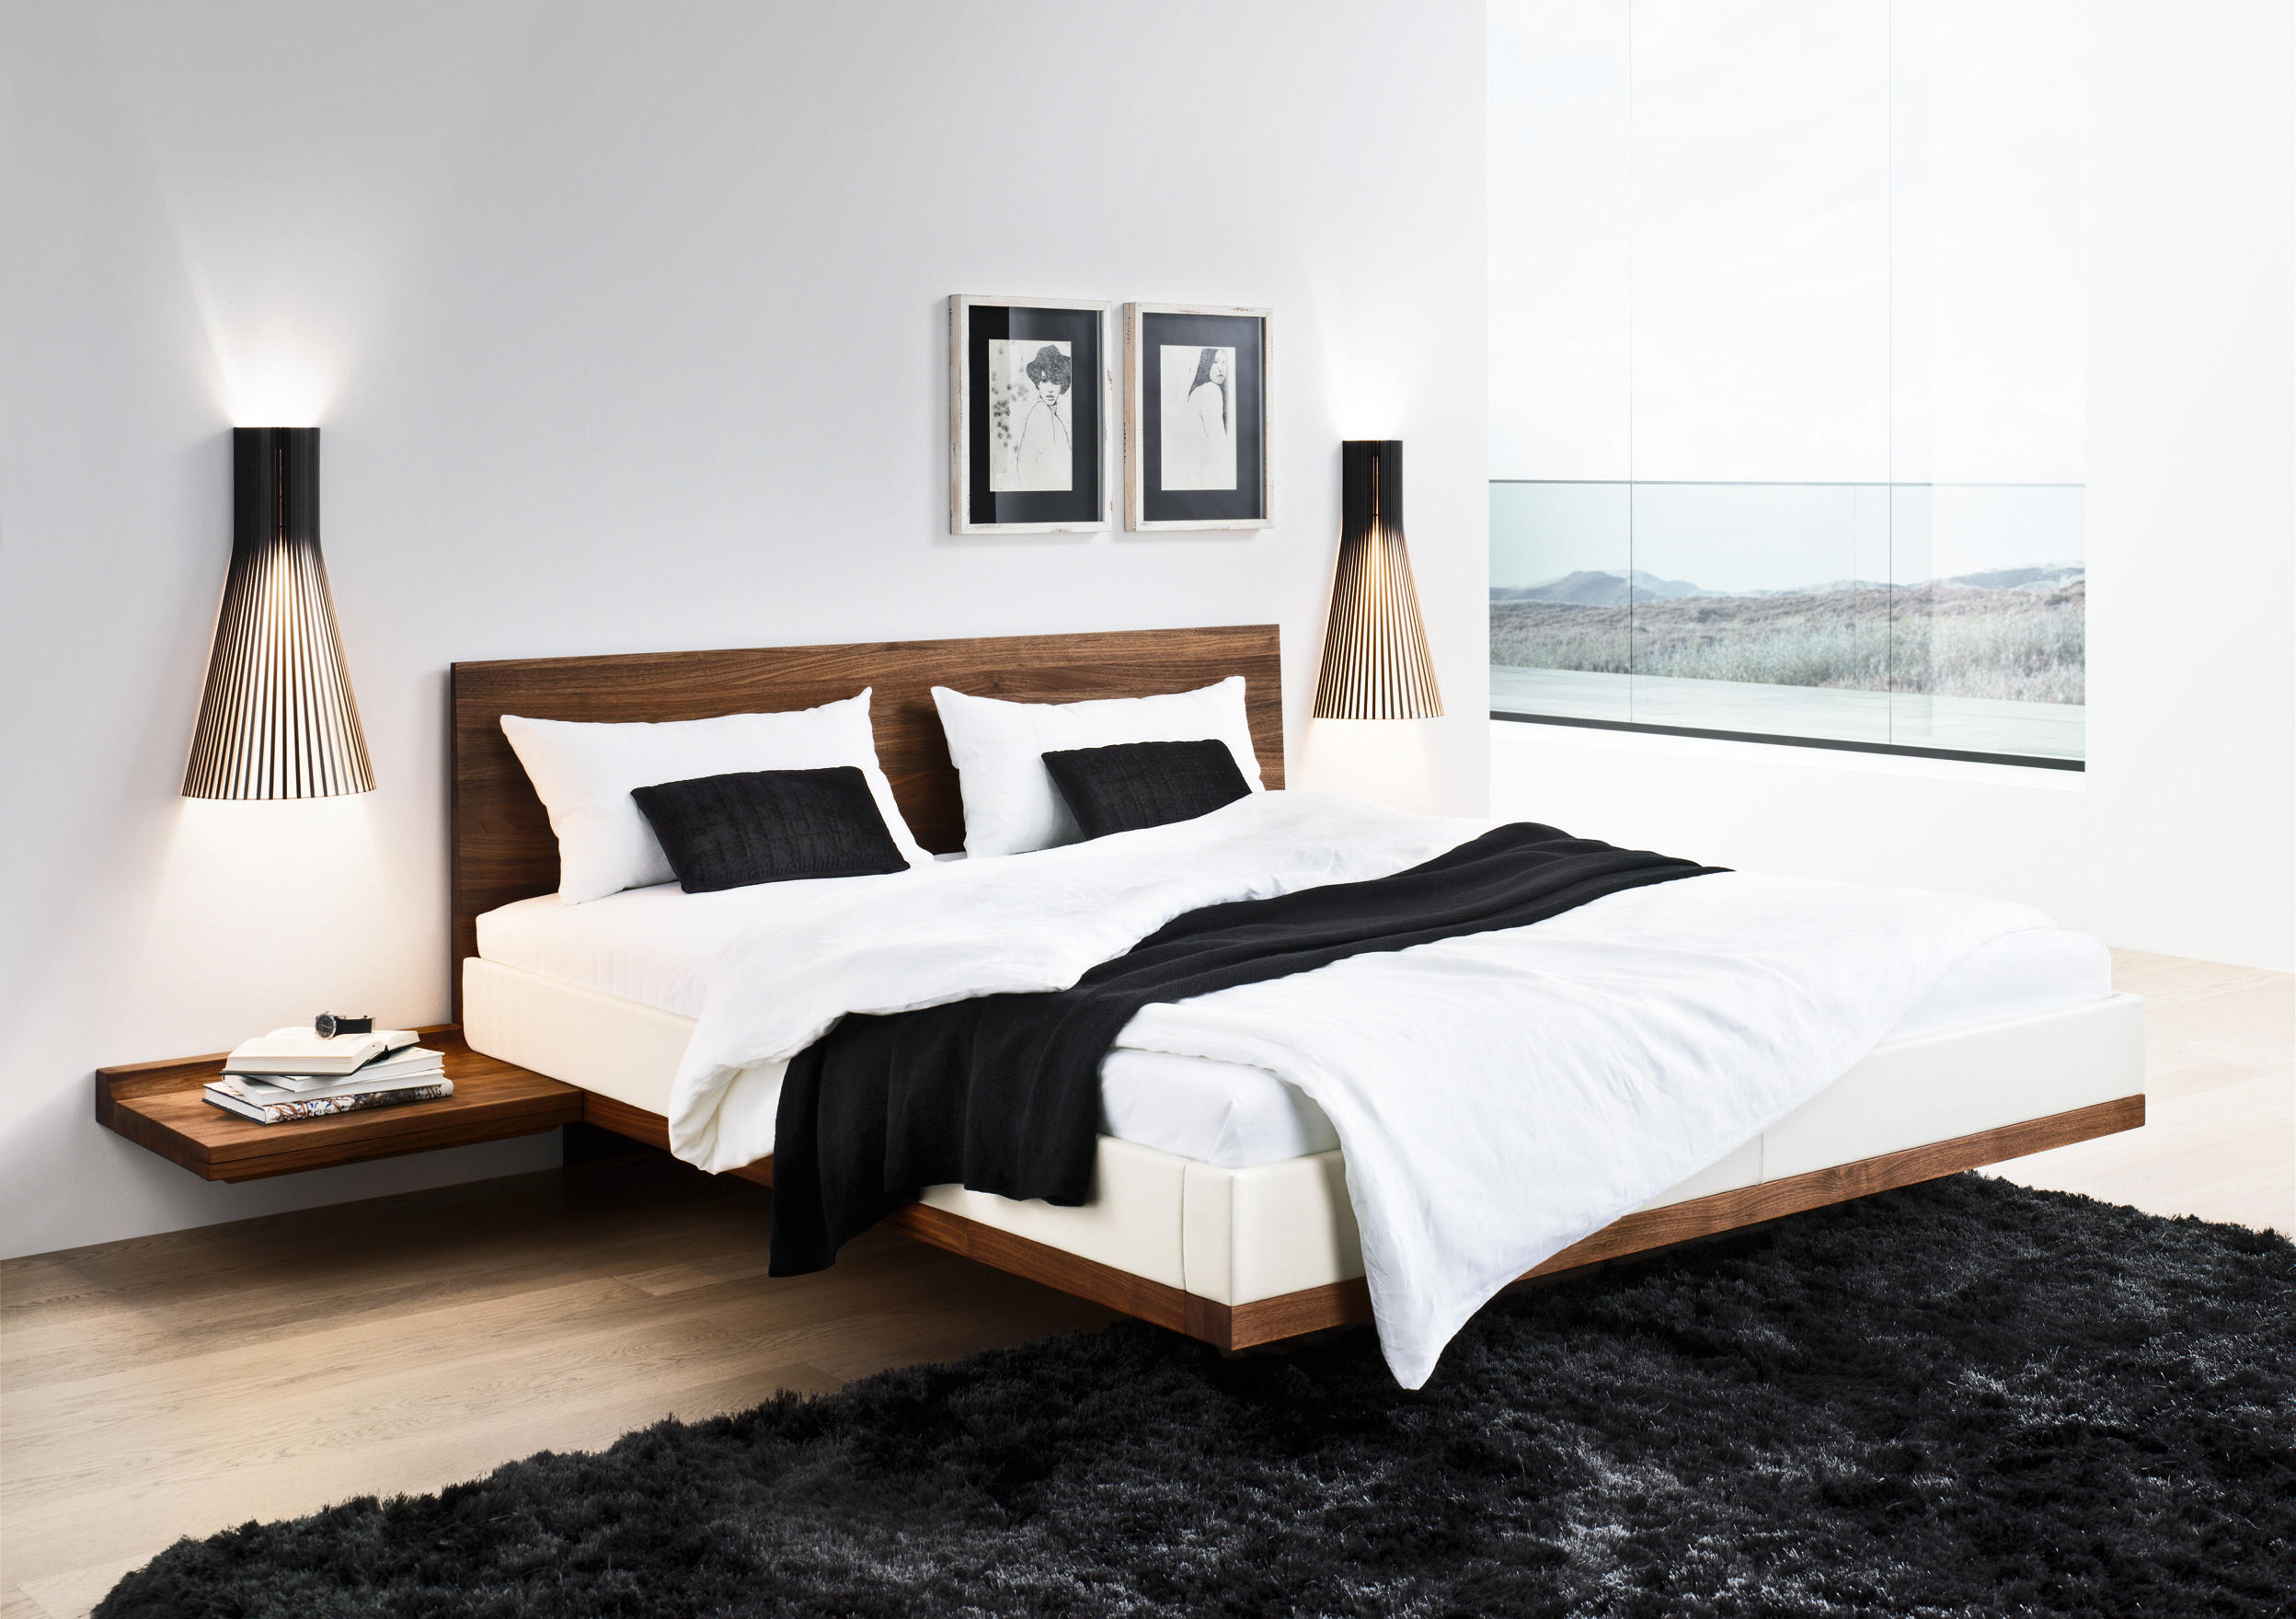 riletto bett betten von team 7 architonic. Black Bedroom Furniture Sets. Home Design Ideas